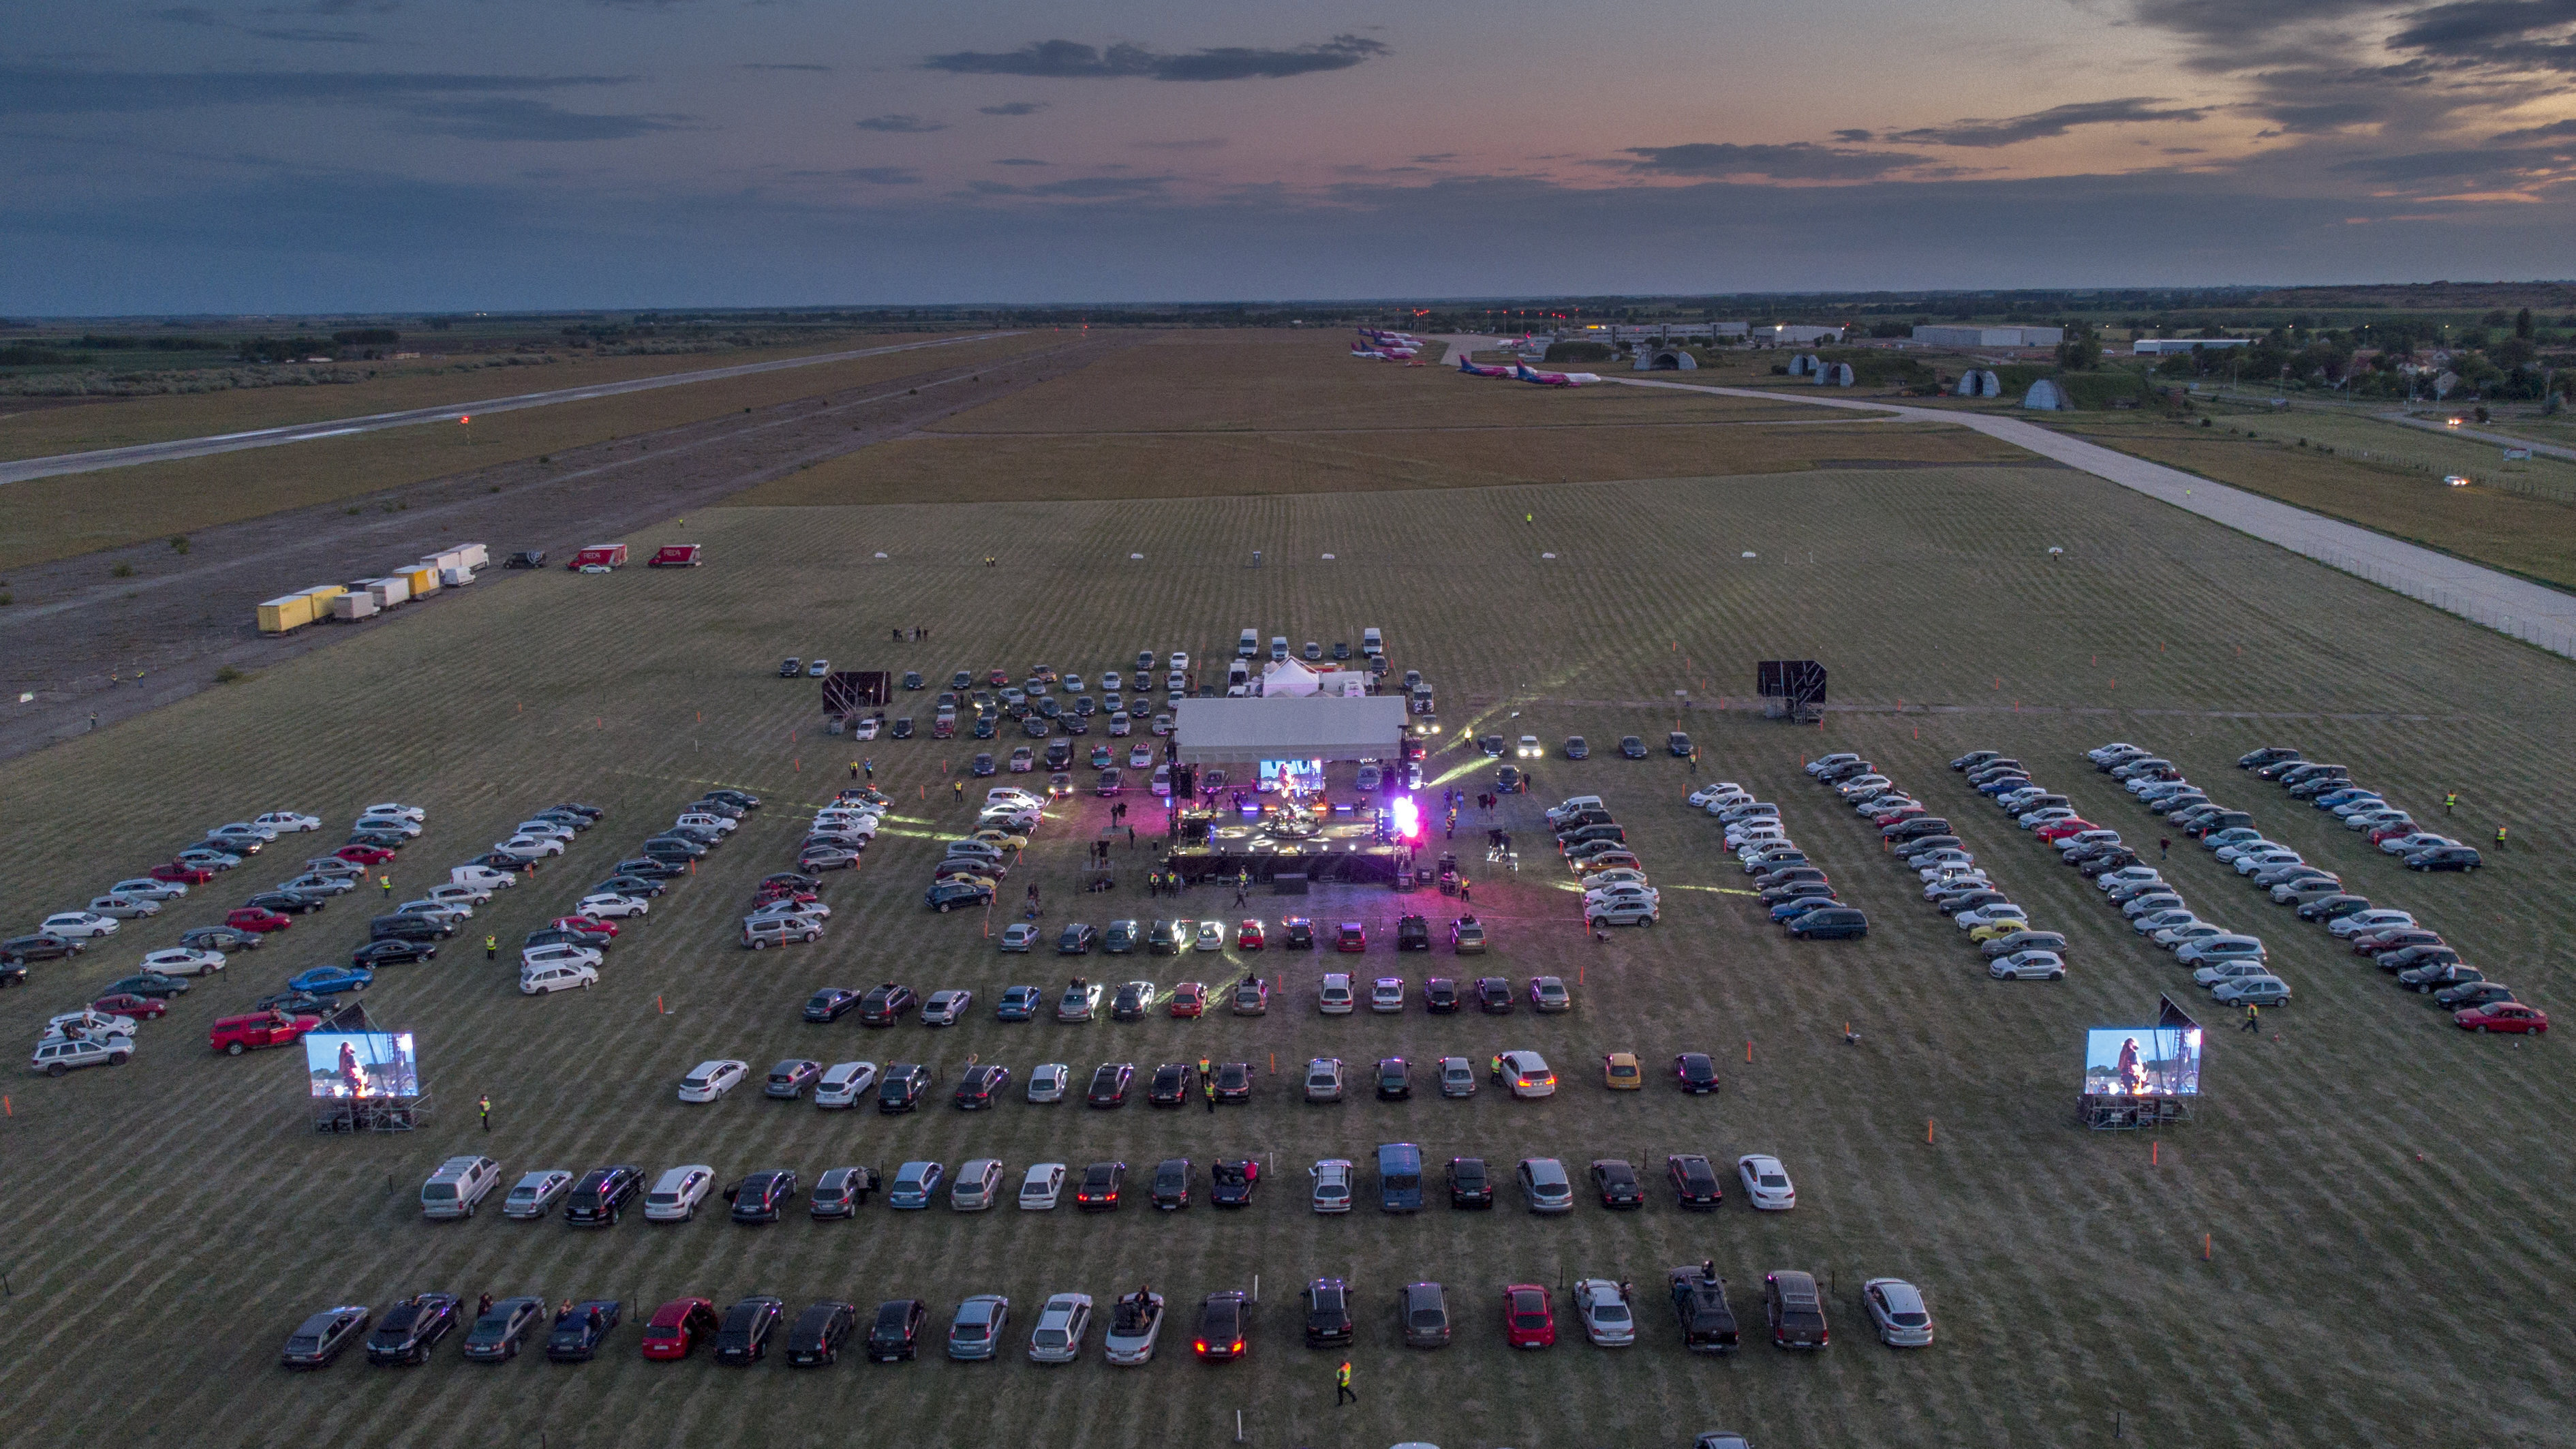 Fans attend the drive-in concert of the Hungarian rock band Tankcsapda at the Debrecen International Airport in Debrecen, Hungary, Friday, May 29, 2020, when concert halls are still closed in Hungary due to the pandemic of the novel coronavirus COVID-19. (Zsolt Czegledi/MTI via AP)